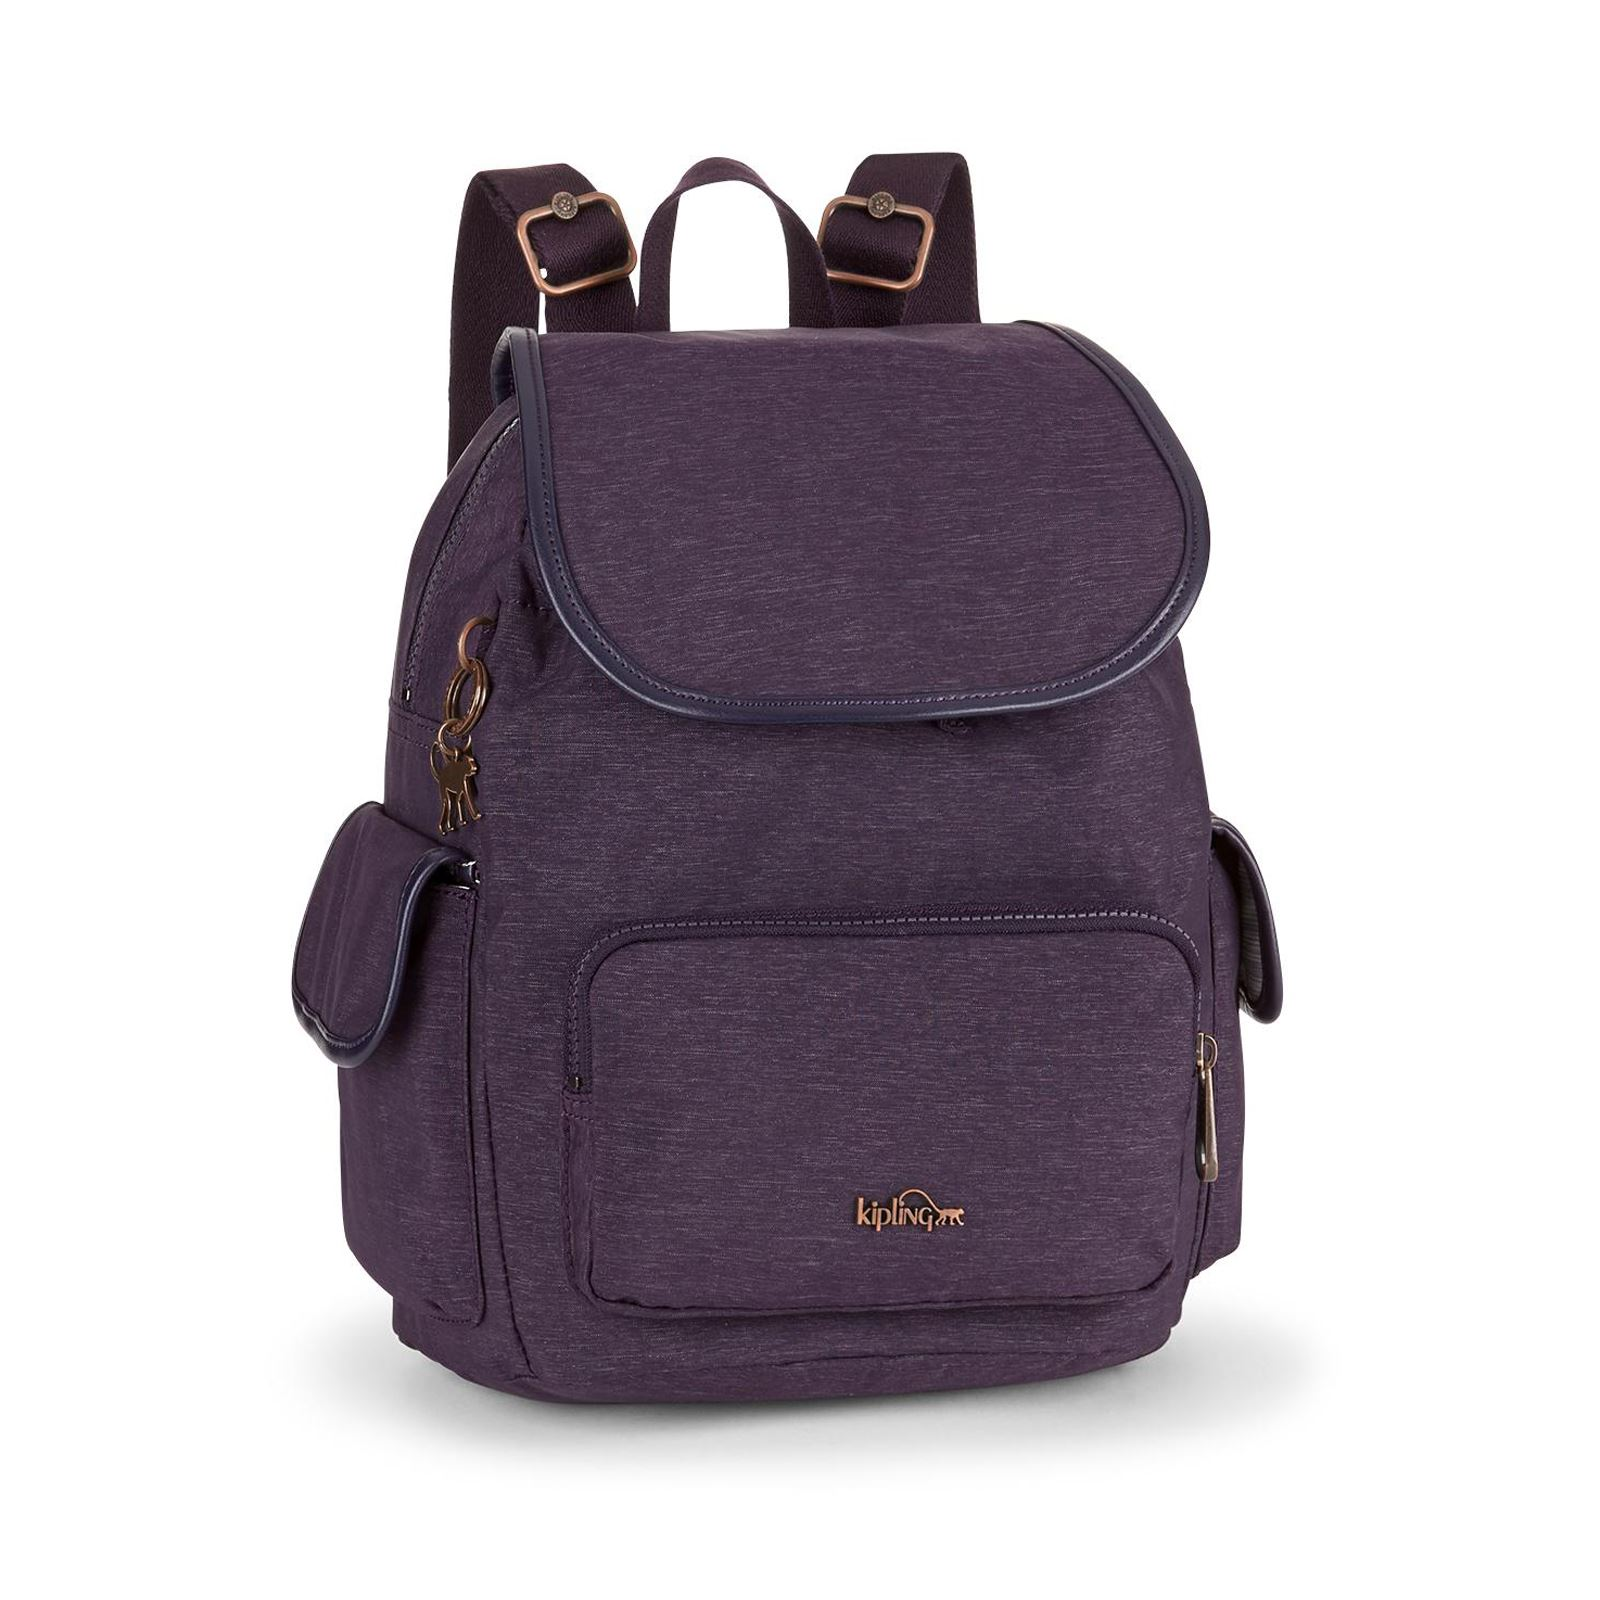 kipling city pack s backpack rucksack university work gym new 2018 colours ebay. Black Bedroom Furniture Sets. Home Design Ideas